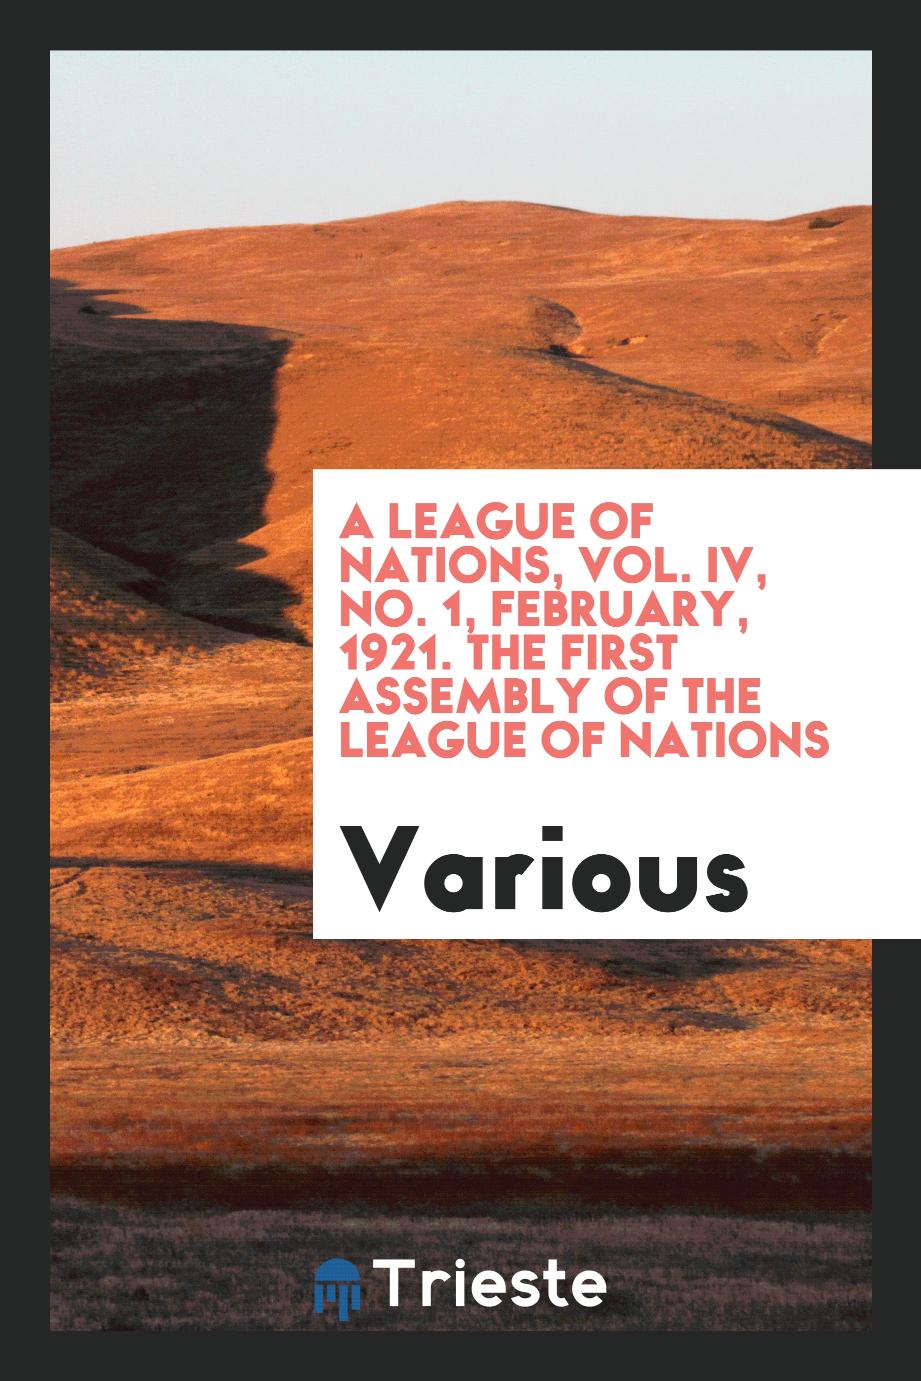 A League of nations, Vol. IV, No. 1, February, 1921. The first Assembly of the League of nations